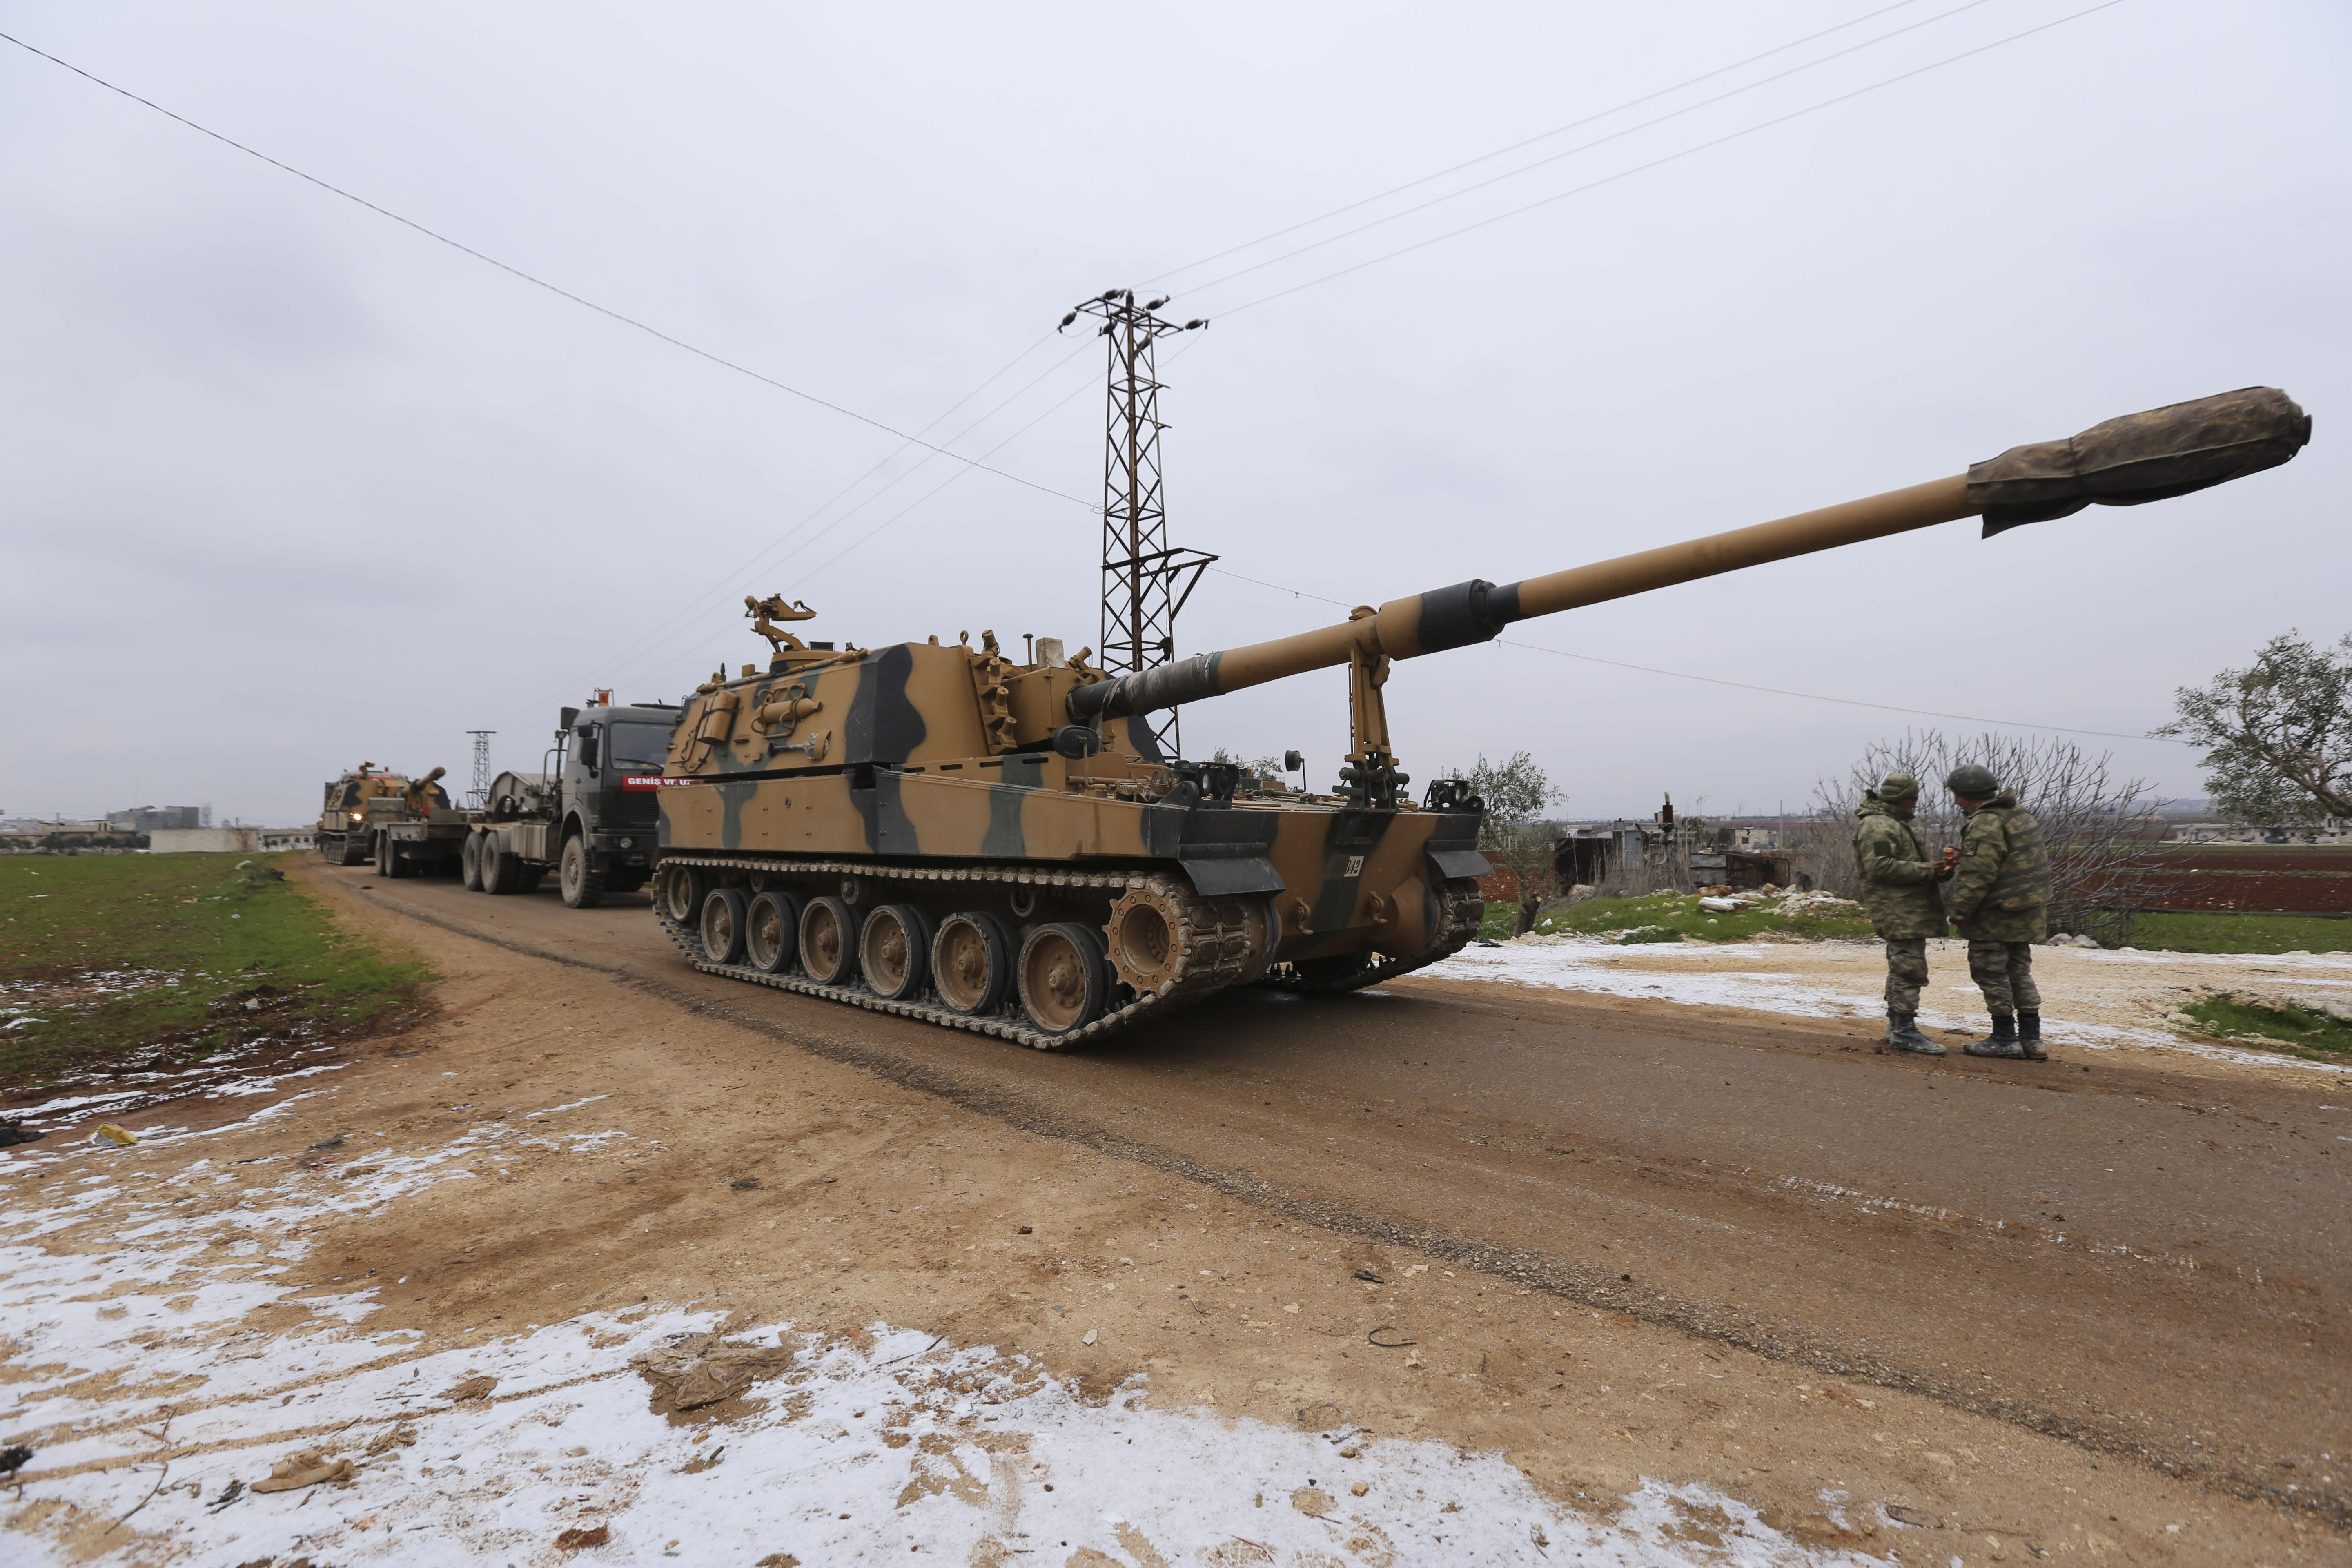 Turkish military convoy is seen near the town of Idlib, Syria, Wednesday, Feb. 12, 2020. Turkish President Recep Tayyip Erdogan said Wednesday that Turkey will attack government forces anywhere in Syria if another Turkish soldier is injured. (AP Photo/Ghaith Alsayed)